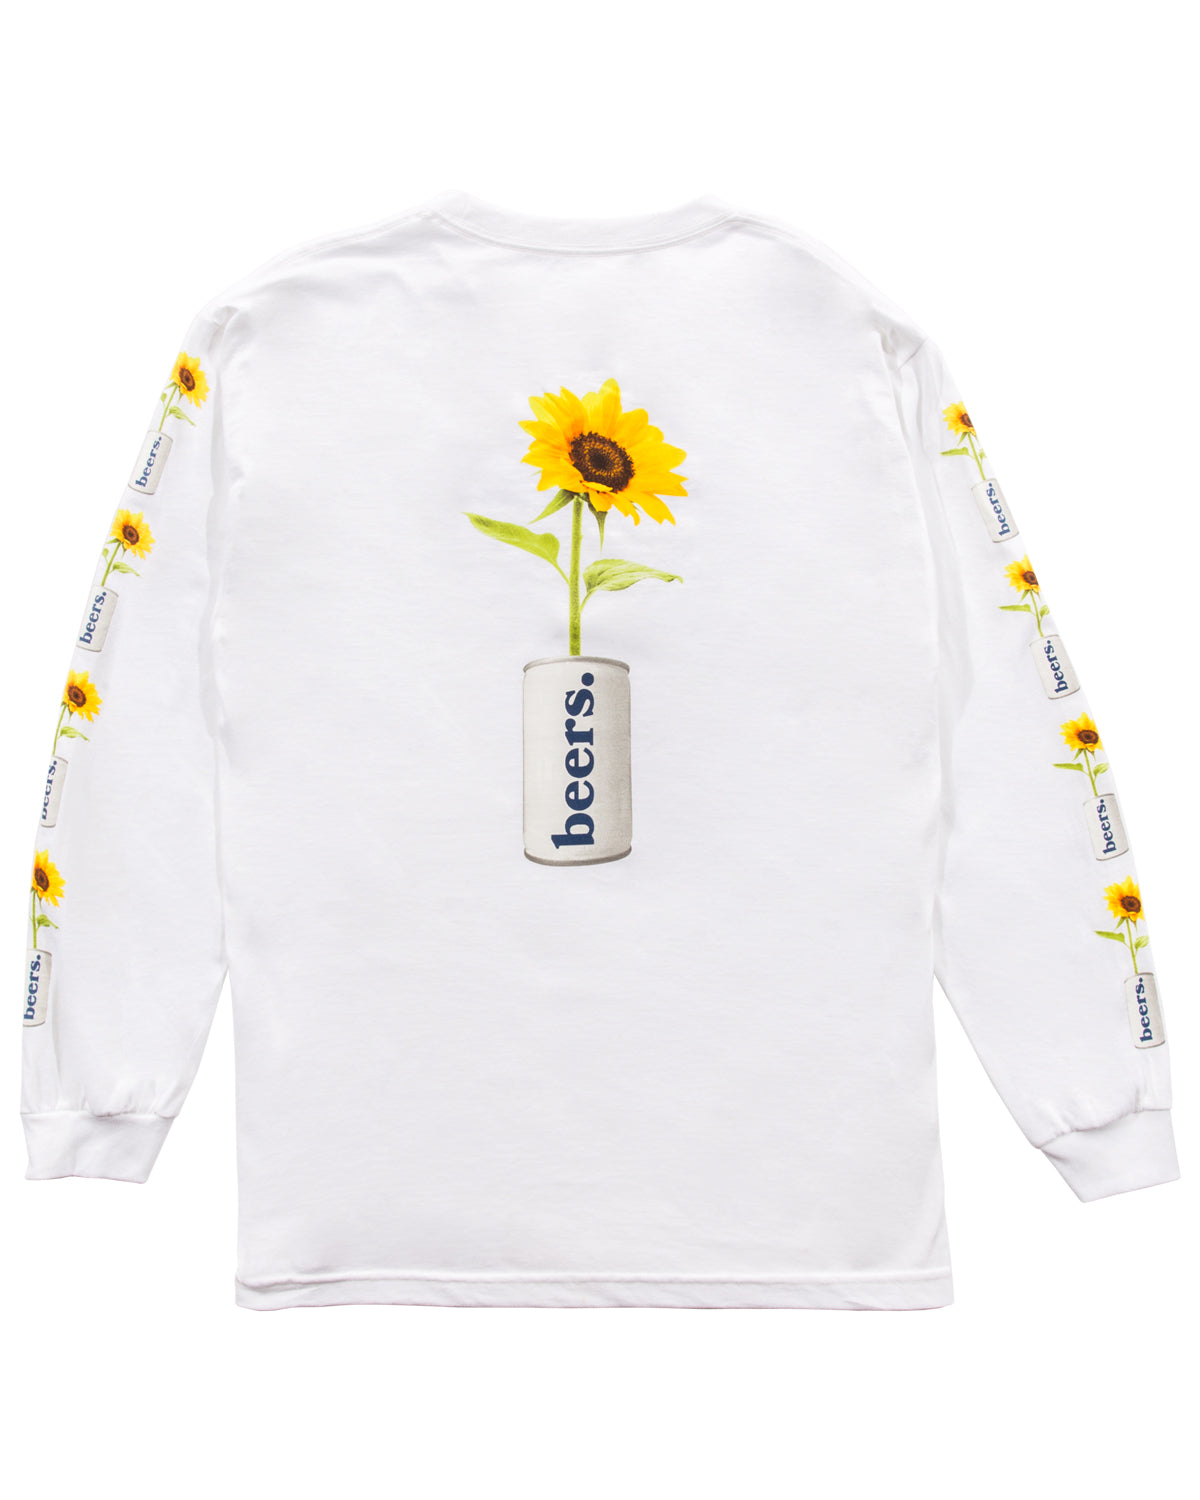 True Love Longsleeve Tee, White